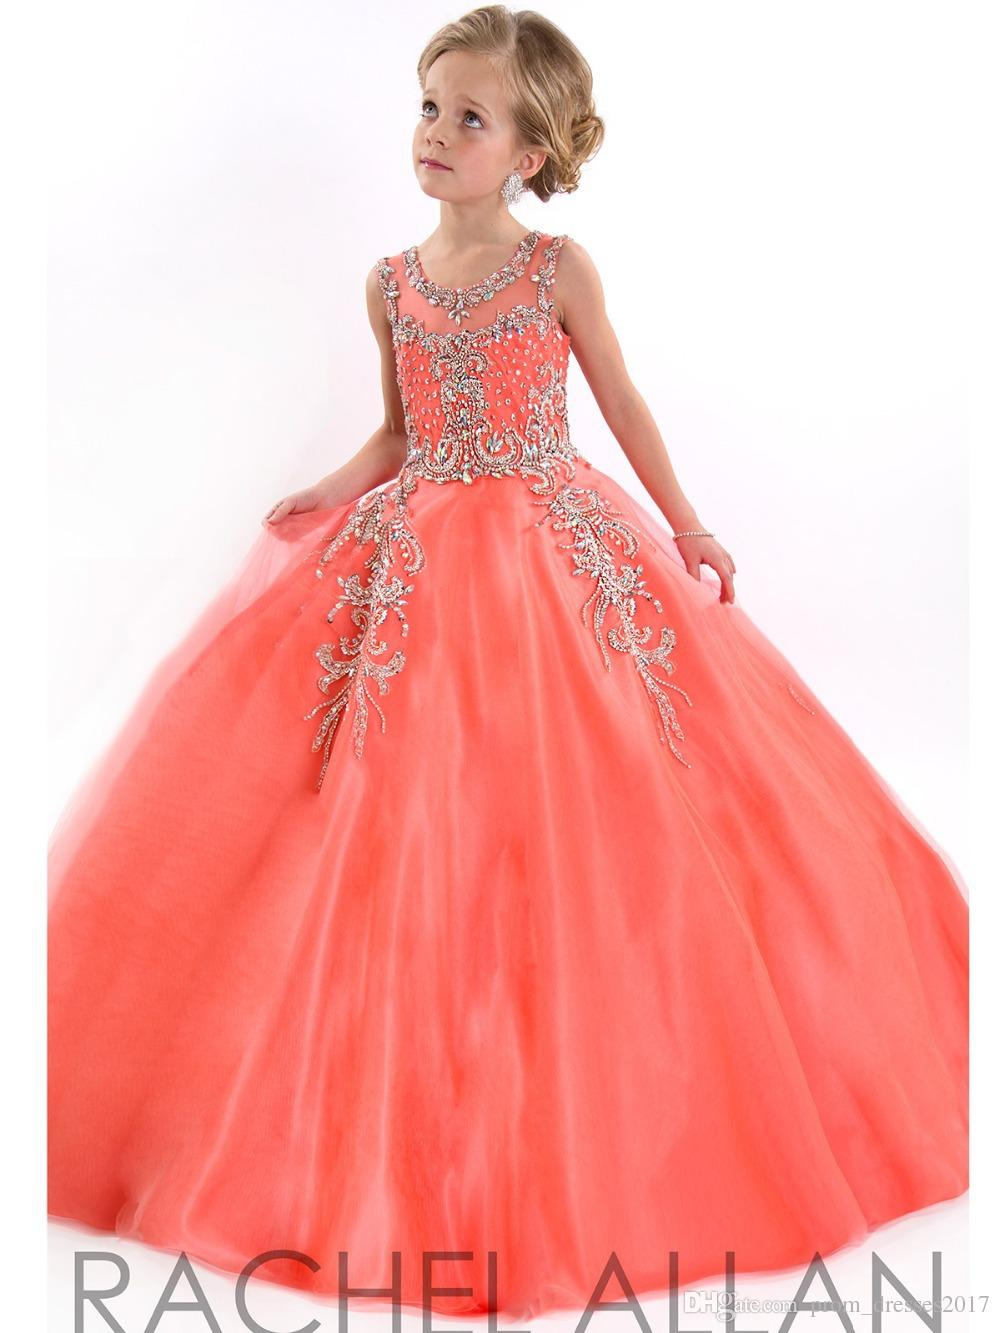 Little Girls Pageant Dresses For Teens Princess Rachel Allan Jewel Crystal Beading White Coral Kids Flower Birthday Gowns HY00732